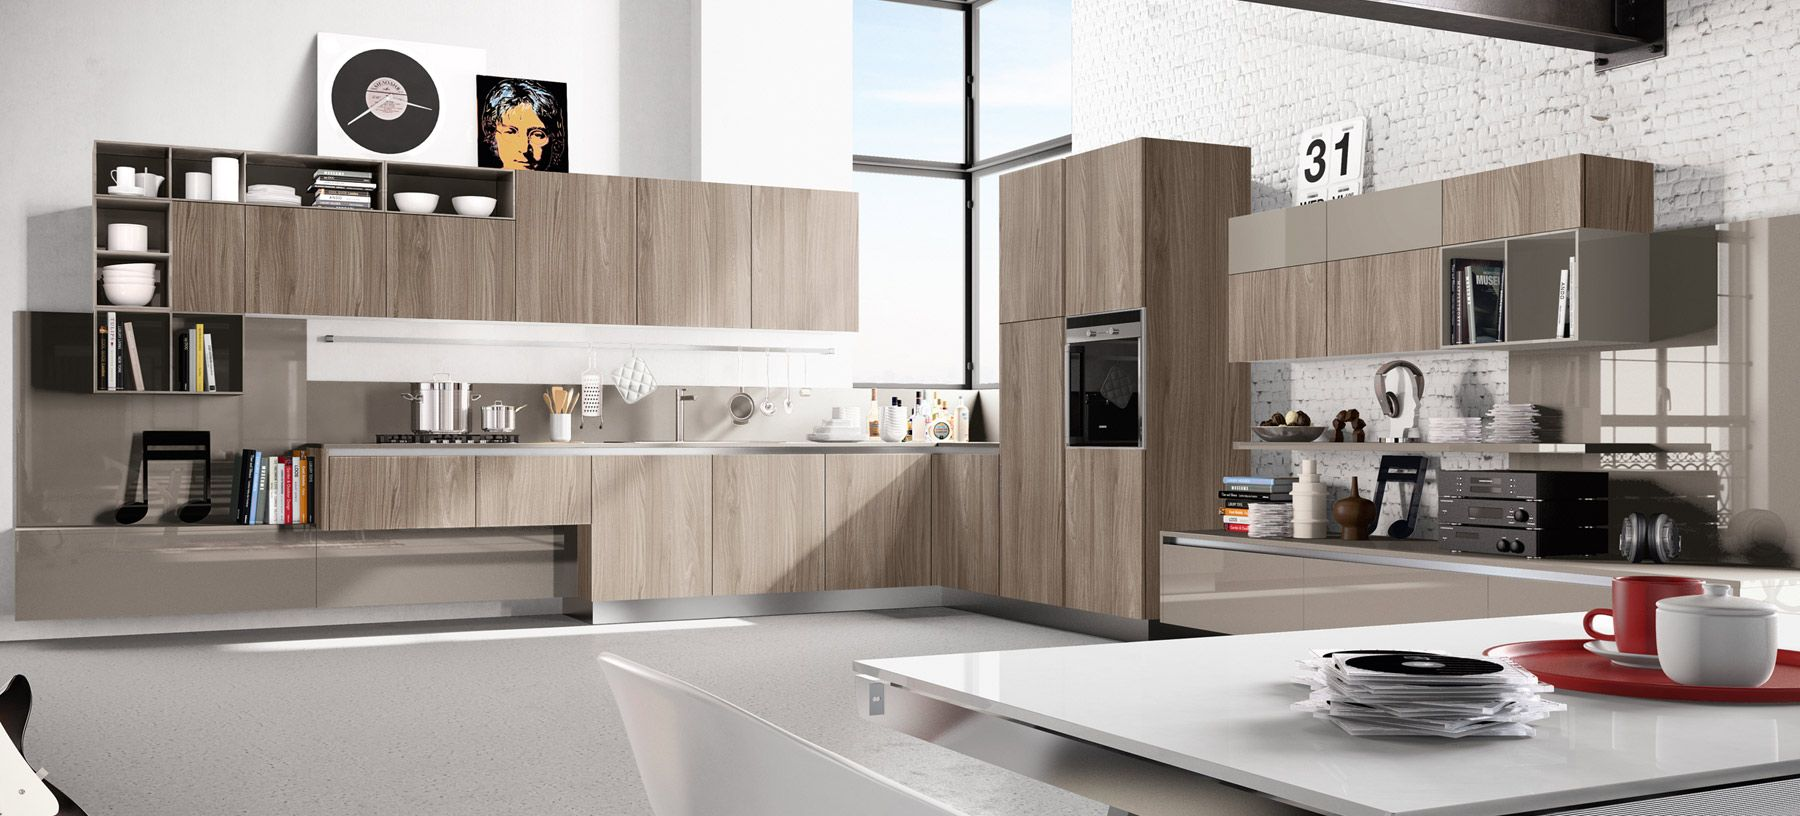 diseo de cocinas modernas al estilo arte pop large kitchen designl - Kitchen Wall Units Designs